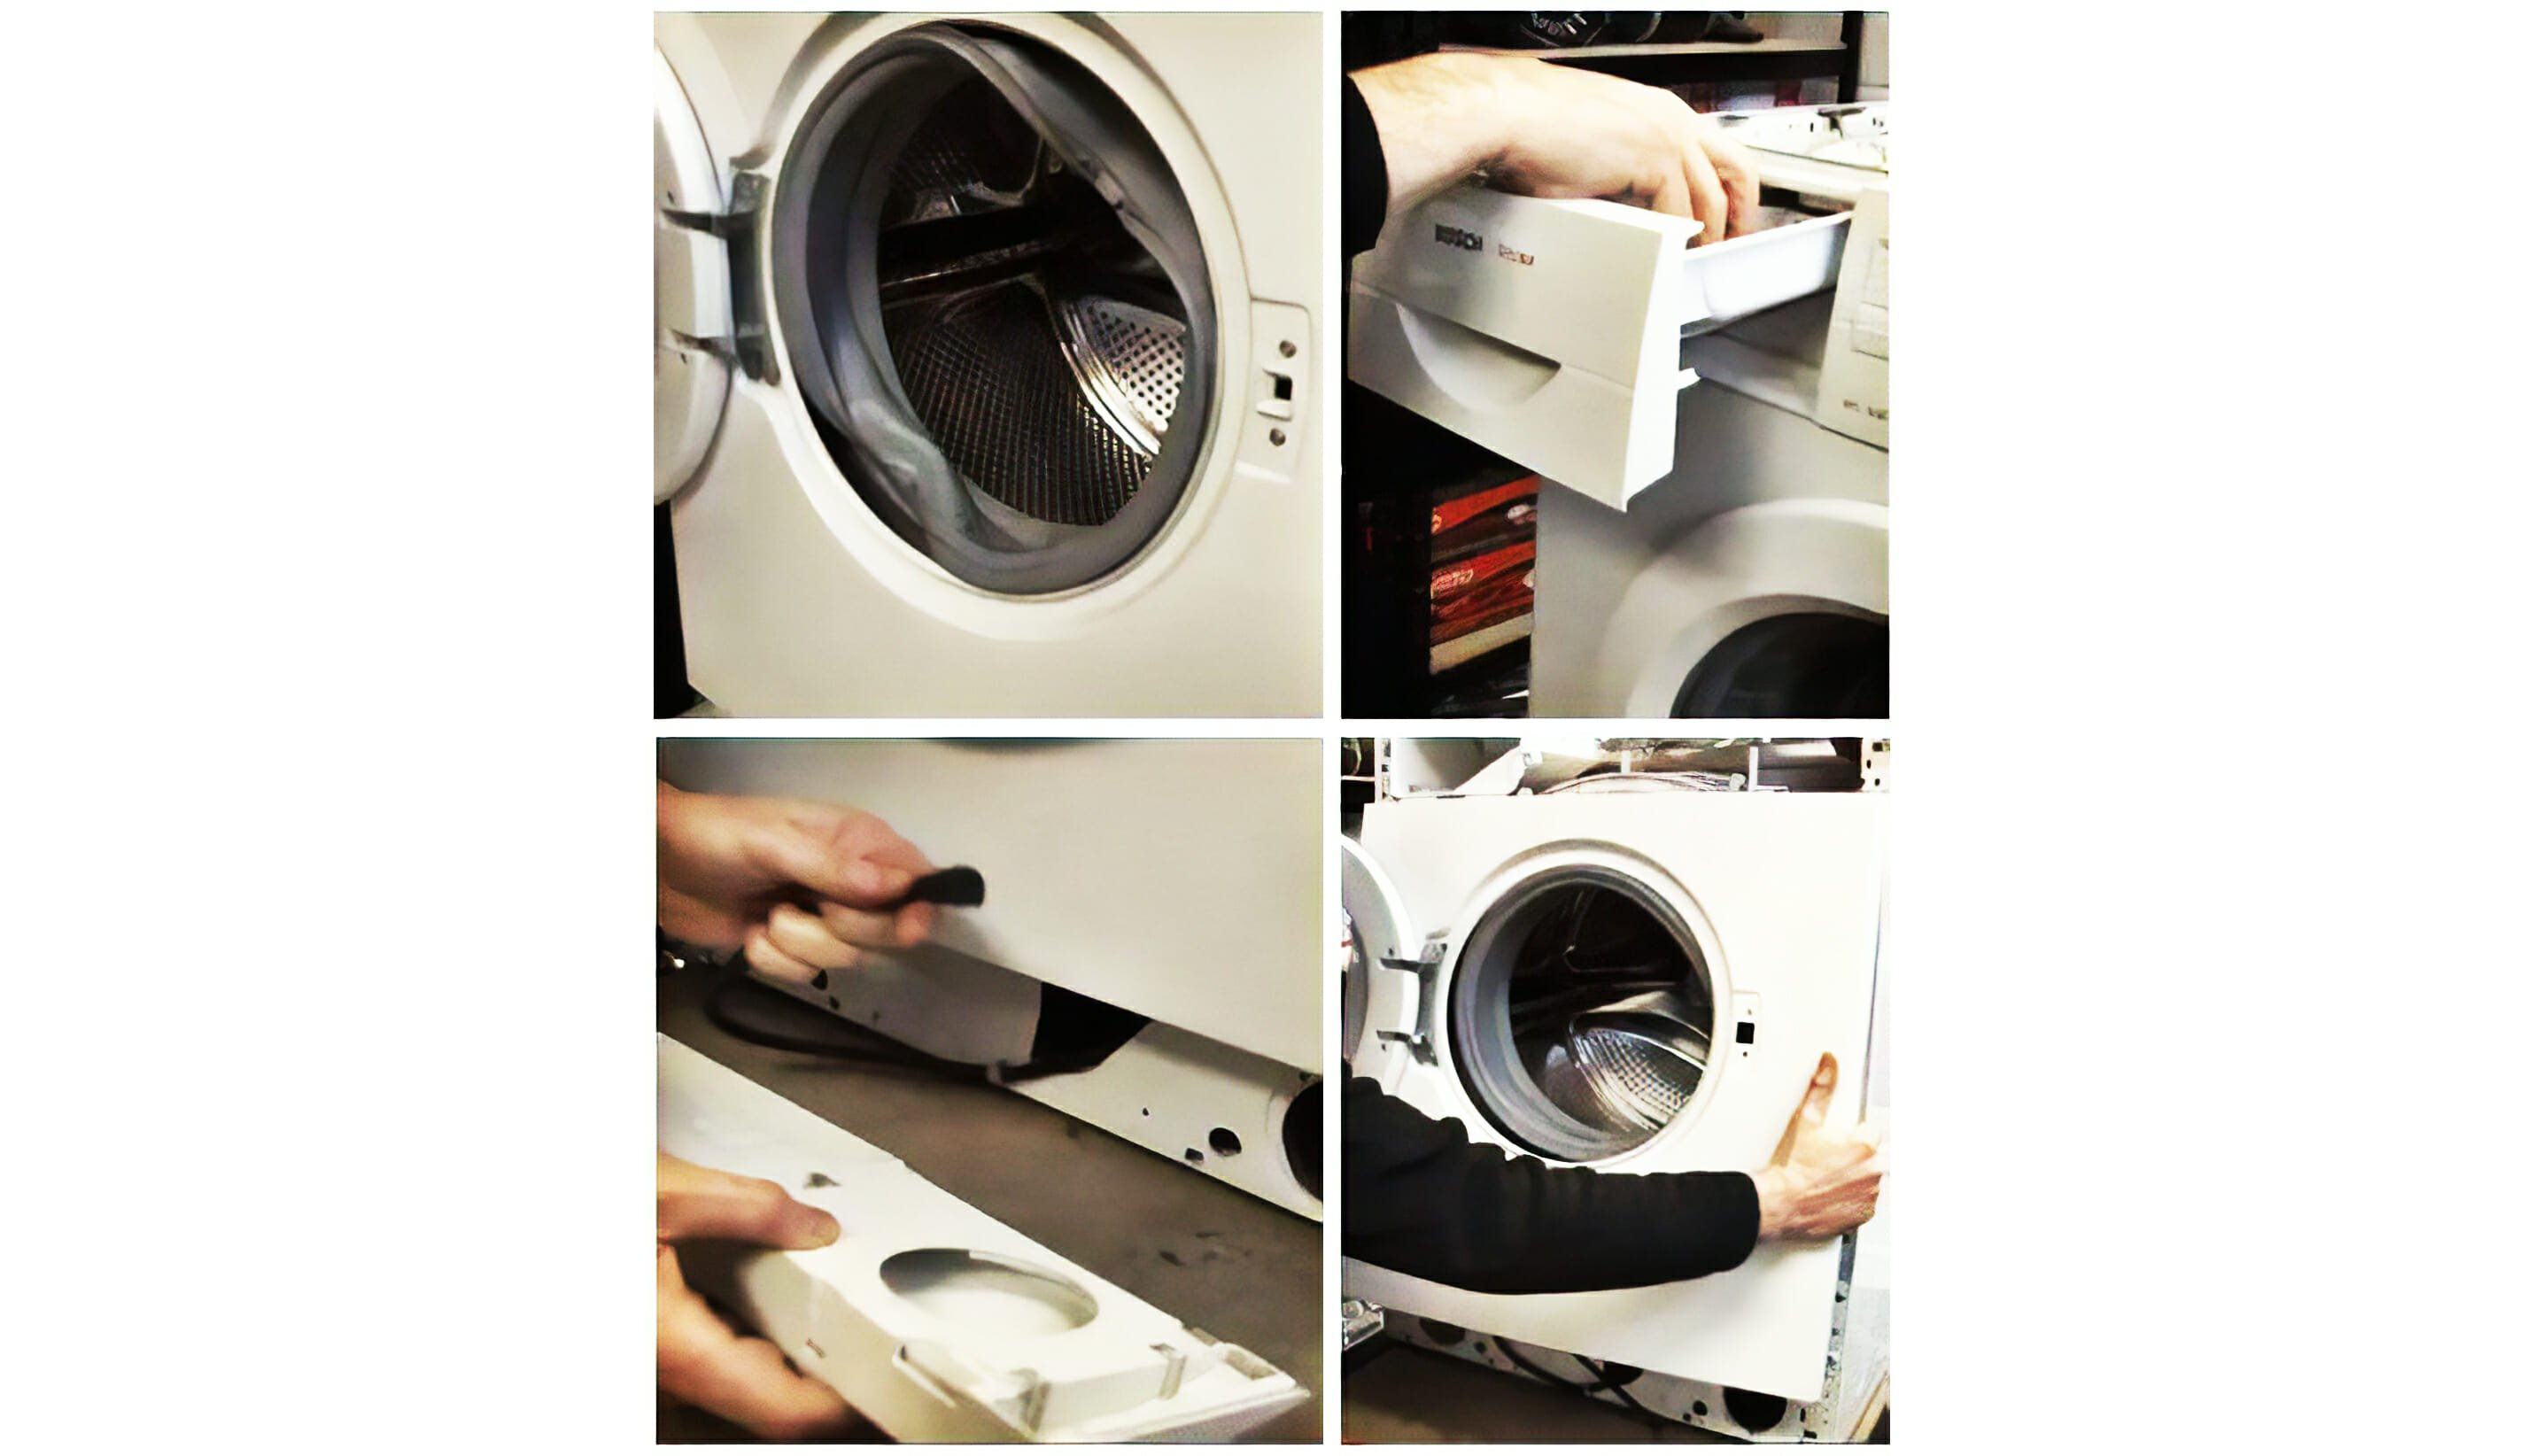 We remove the front part of the body of washing machine Bosch